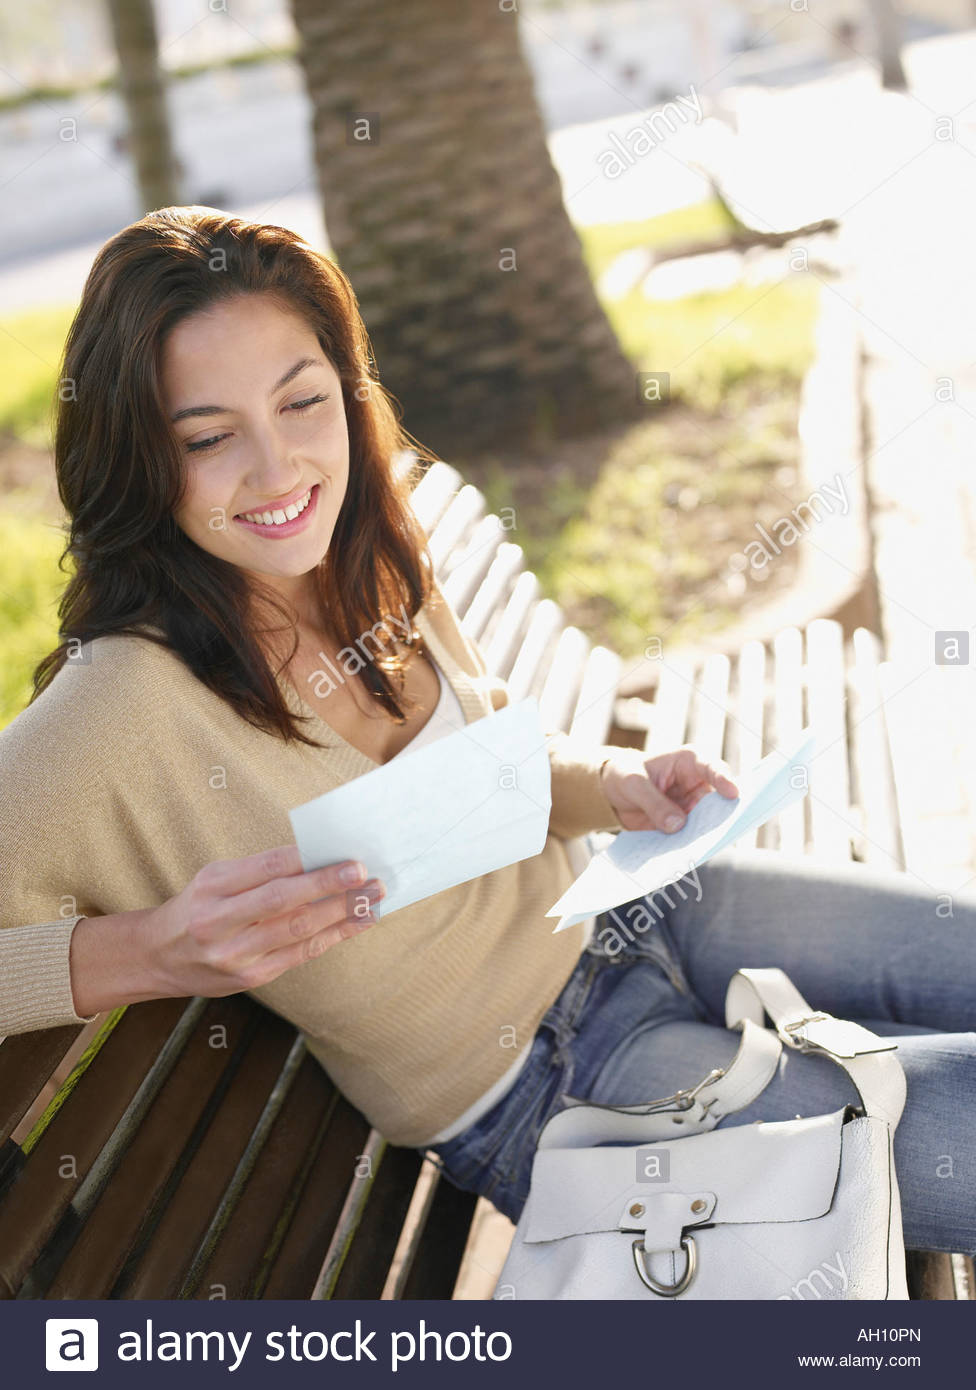 Woman sitting on wooden bench with personal letter smiling - Stock Image